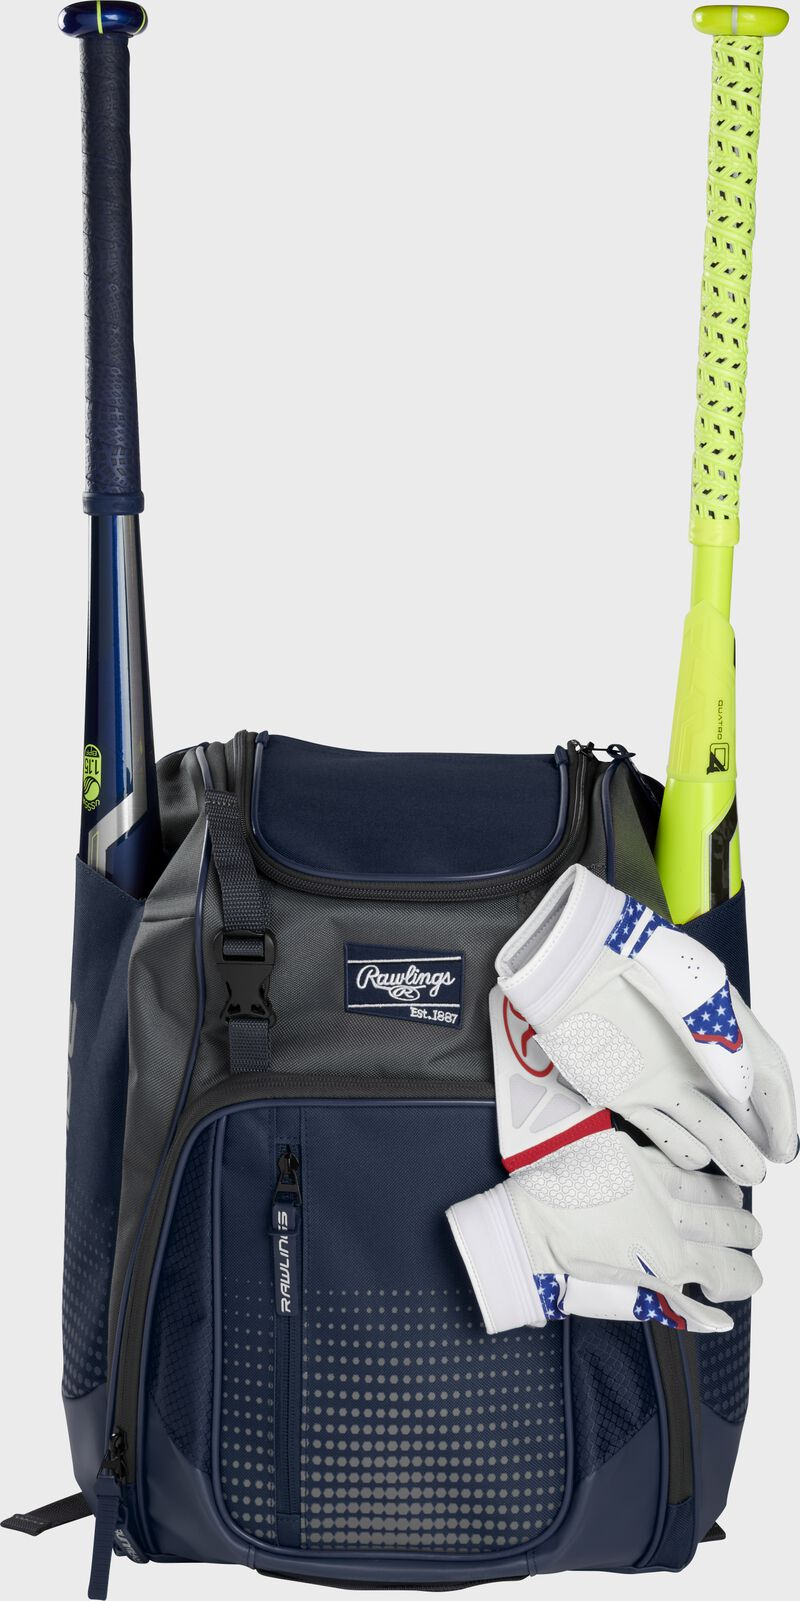 A navy Franchise backpack with two bats in the sides and batting gloves on the front Velcro strap - SKU: FRANBP-N